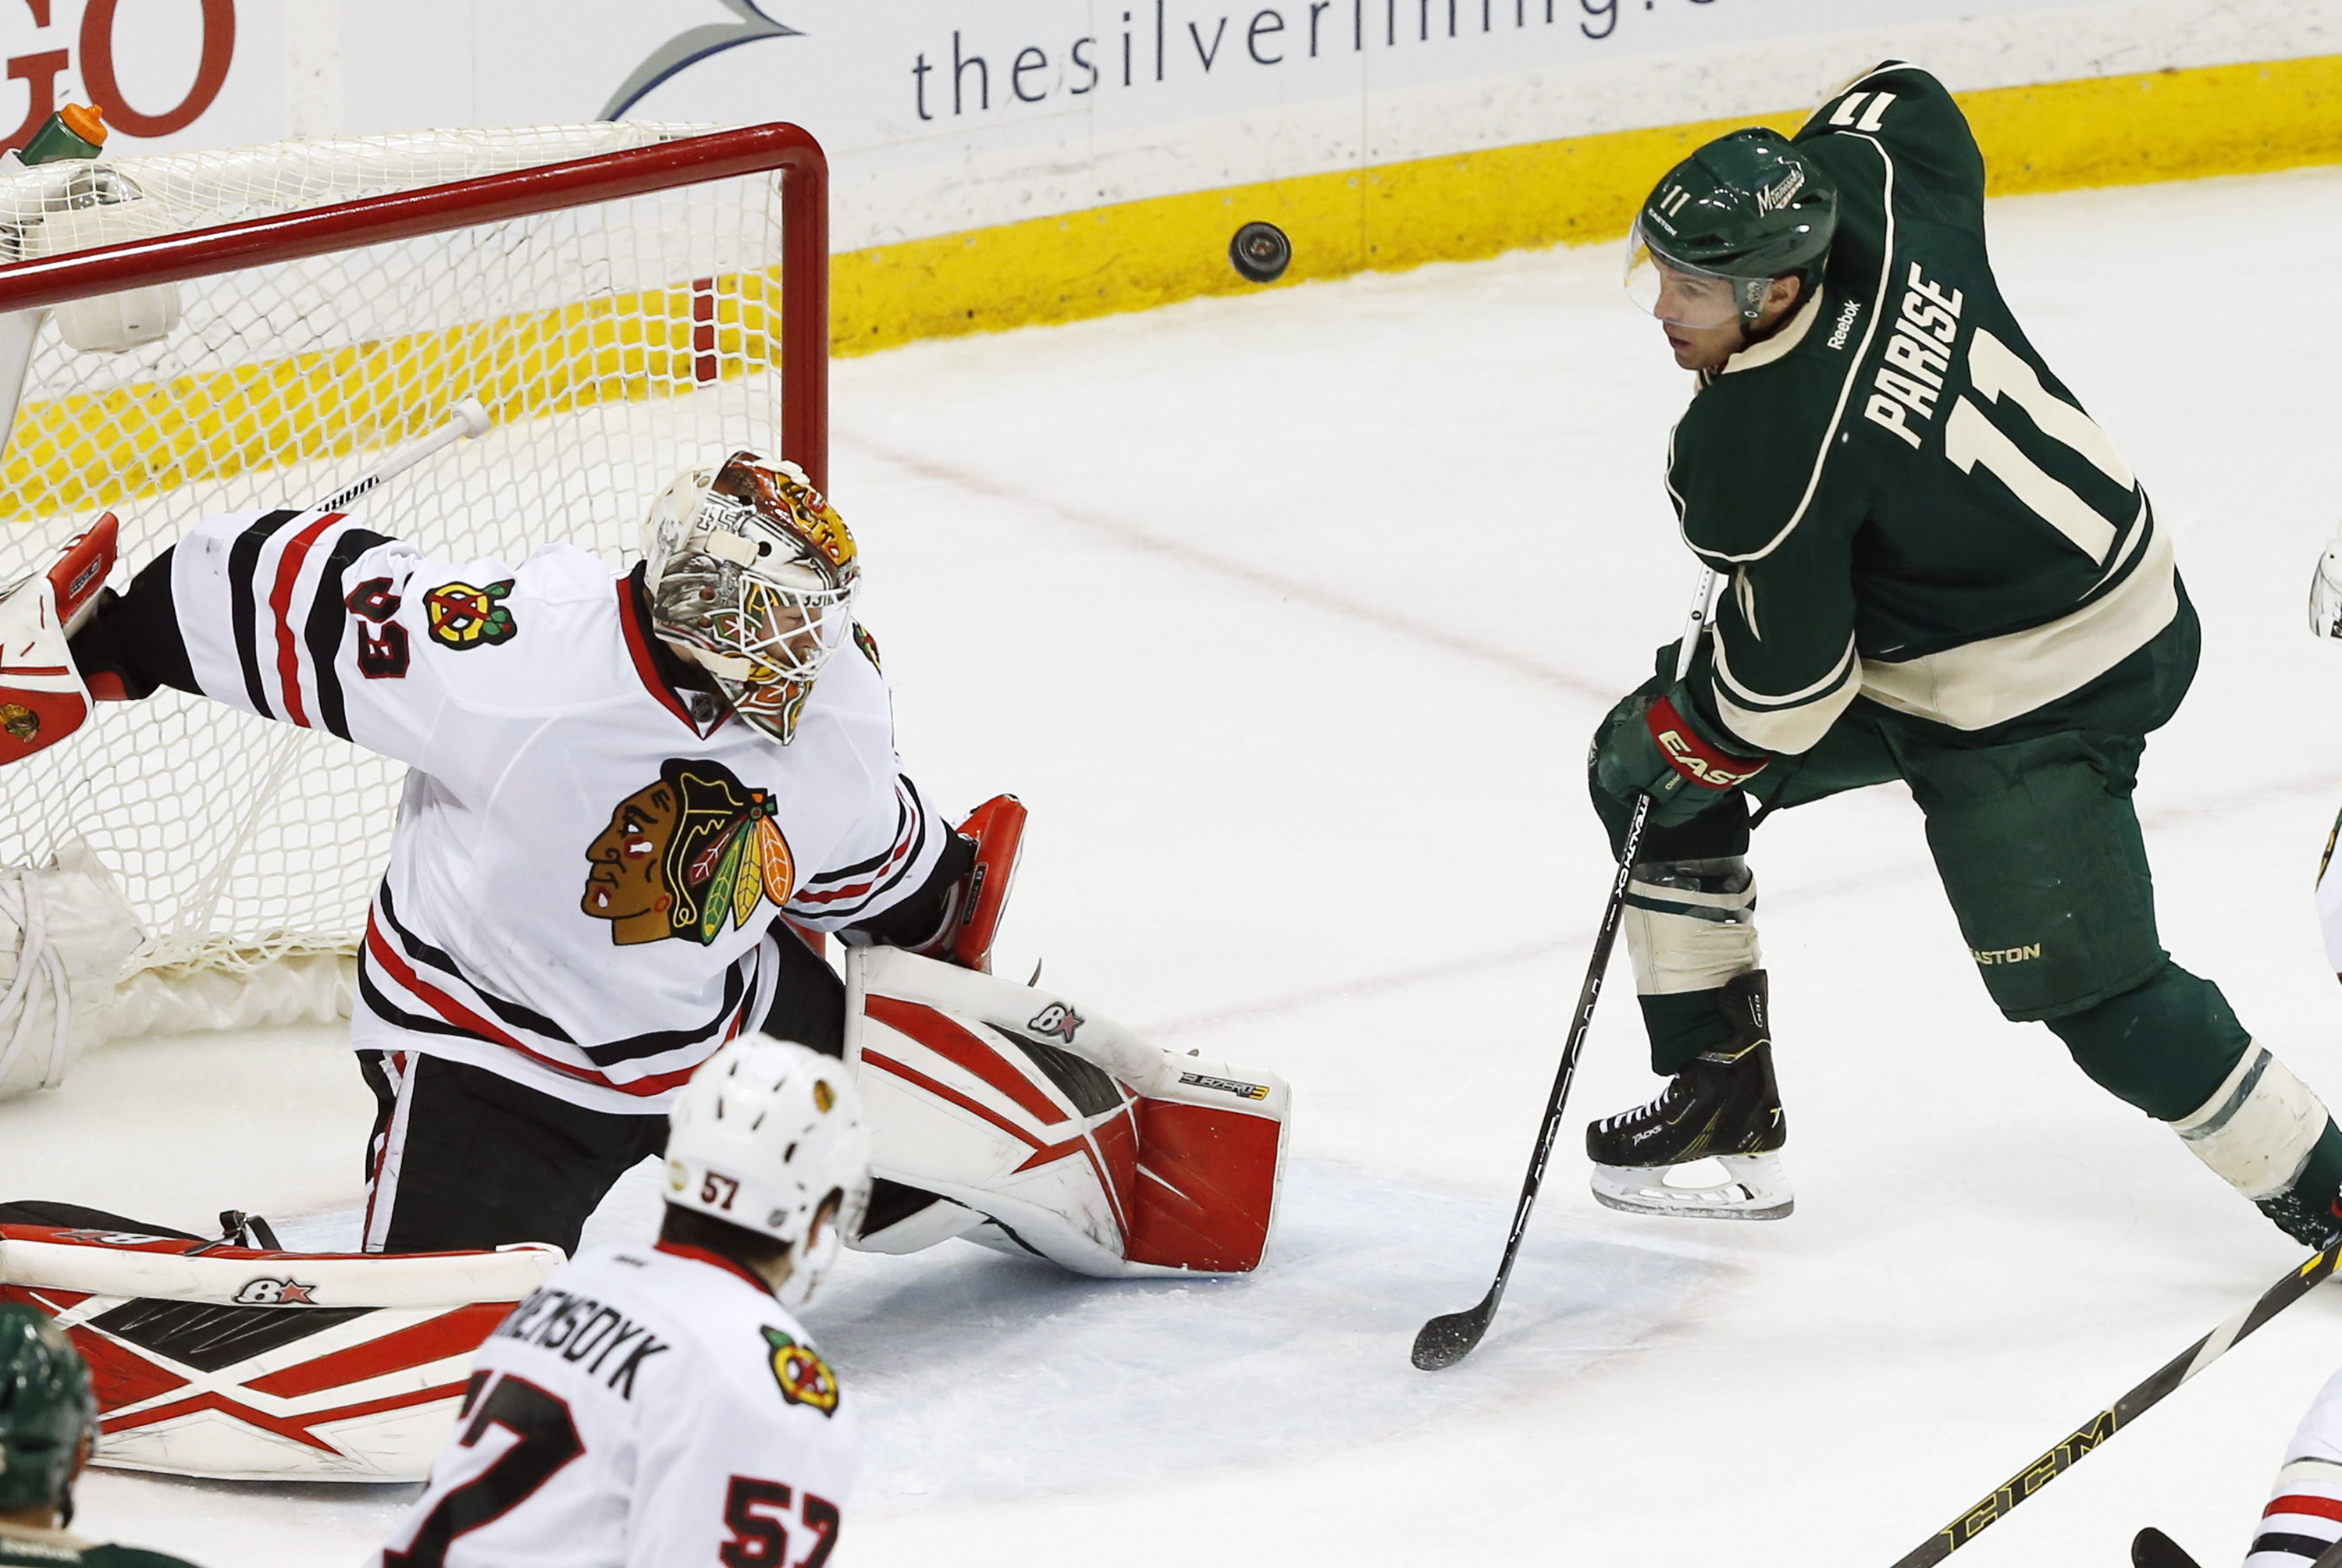 Chicago Blackhawks goalie Scott Darling, left, stops a shot by Minnesota Wilds Zach Parise, right, in the first period of an NHL hockey game Tuesday, March 29, 2016, in St. Paul, Minn. (AP Photo/Jim Mone)